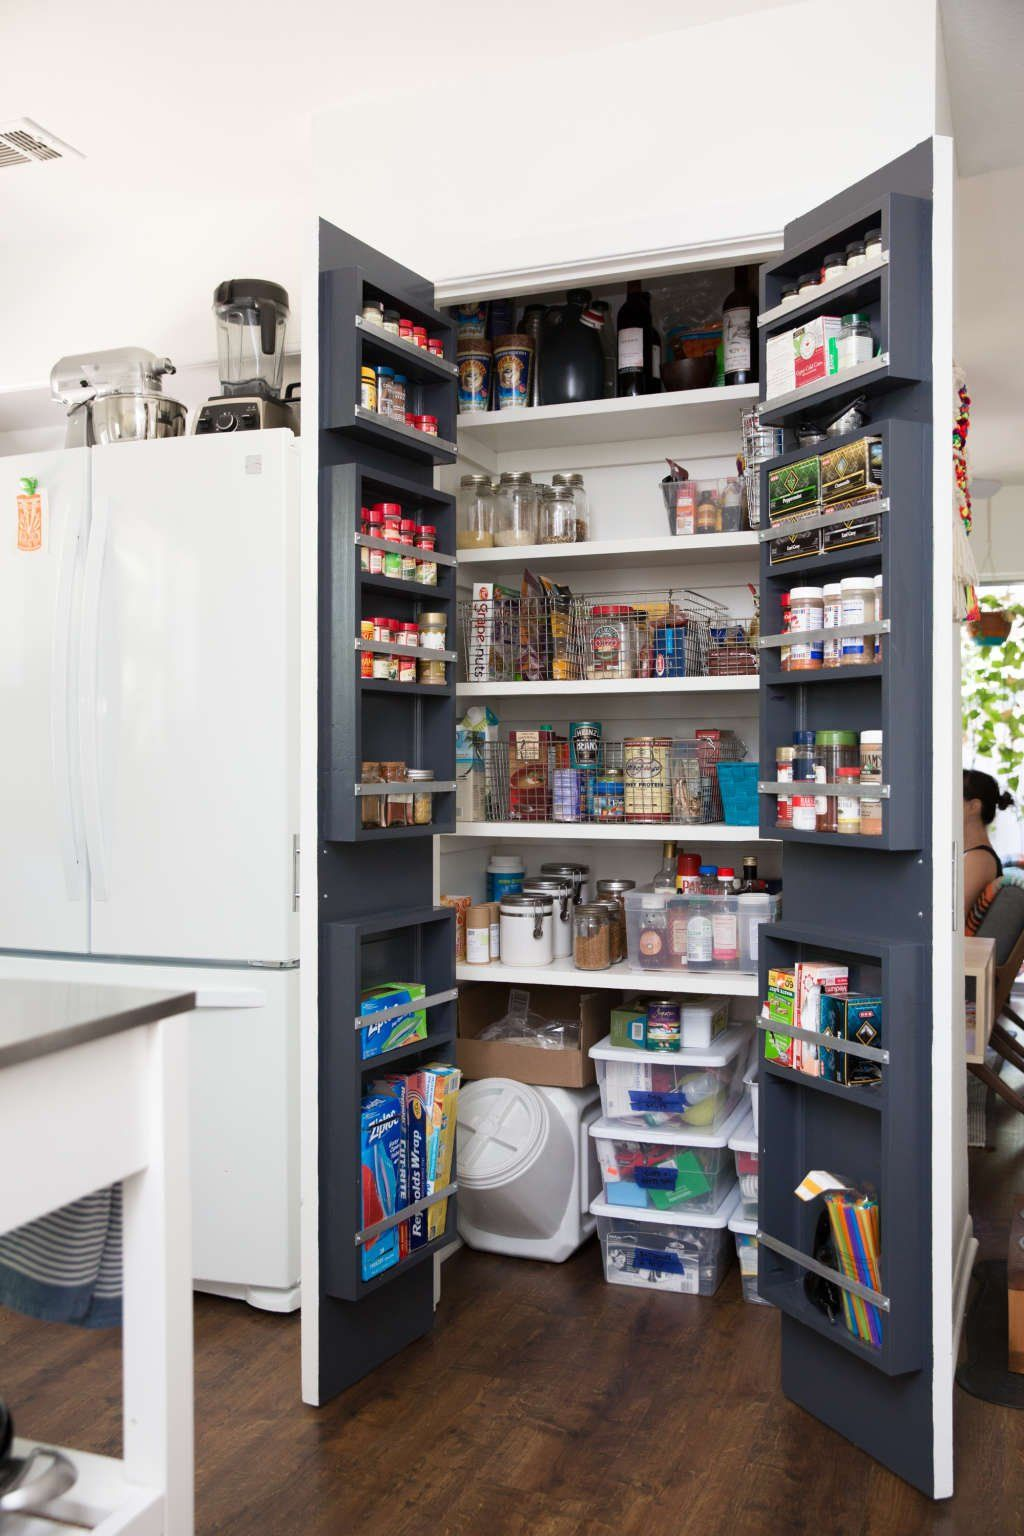 The 9 Best Pantry Hacks on Pinterest for Organizing Your Costco ...